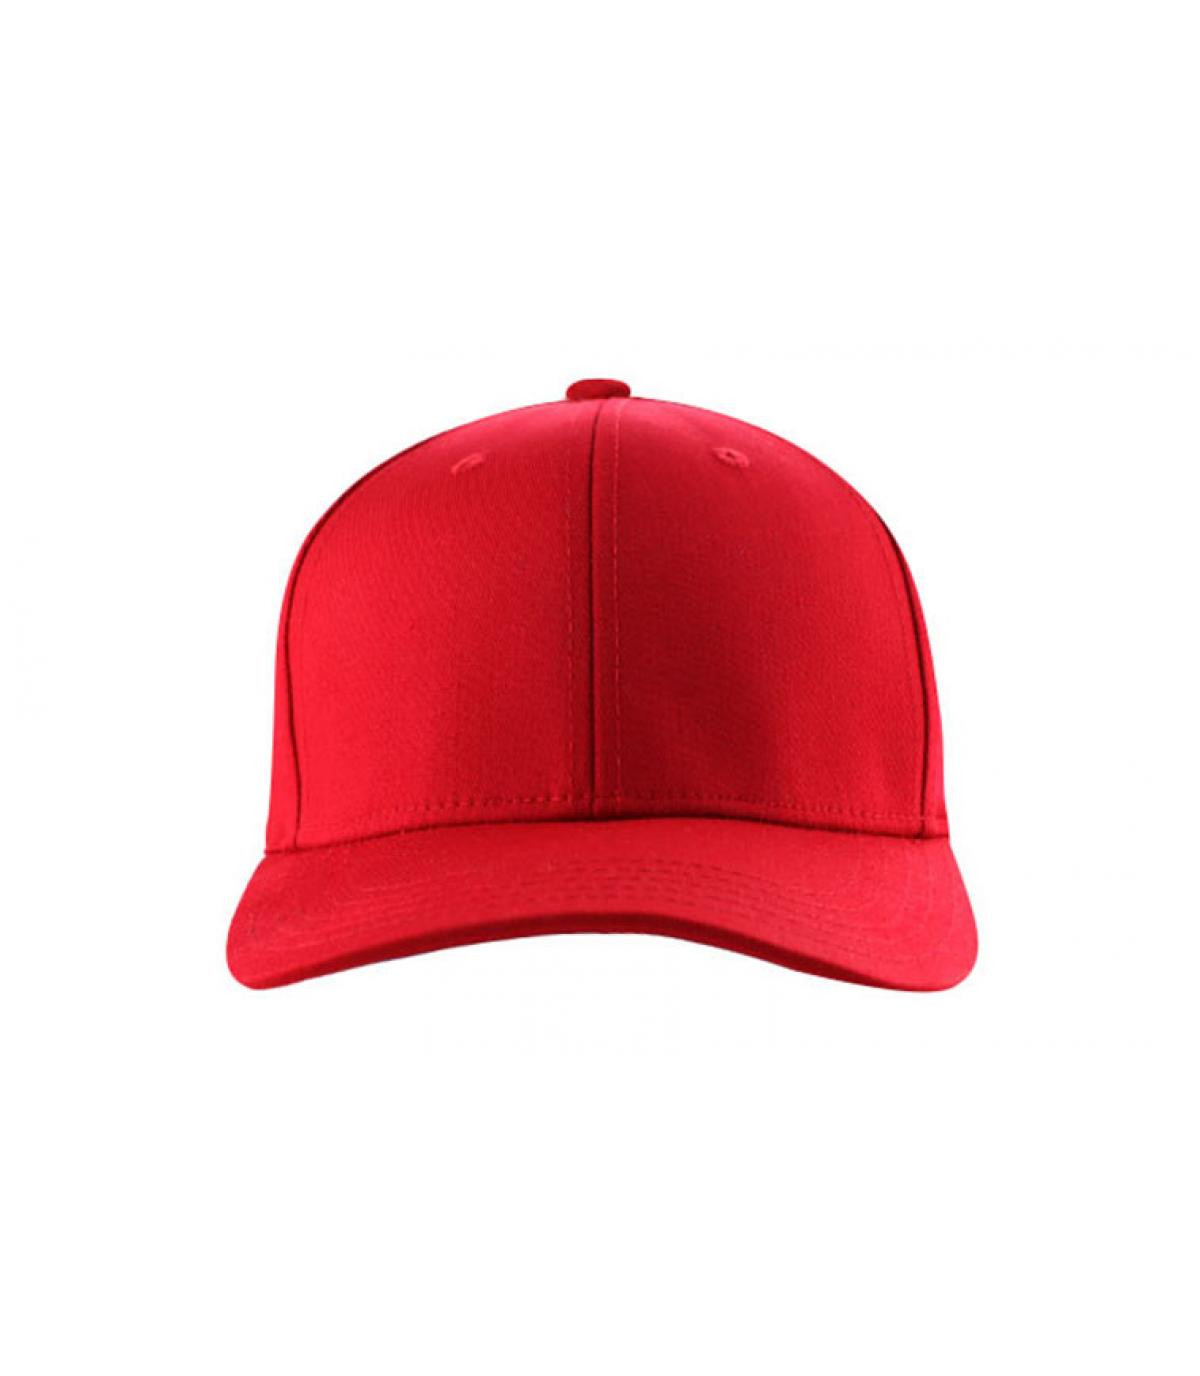 Curve blank red